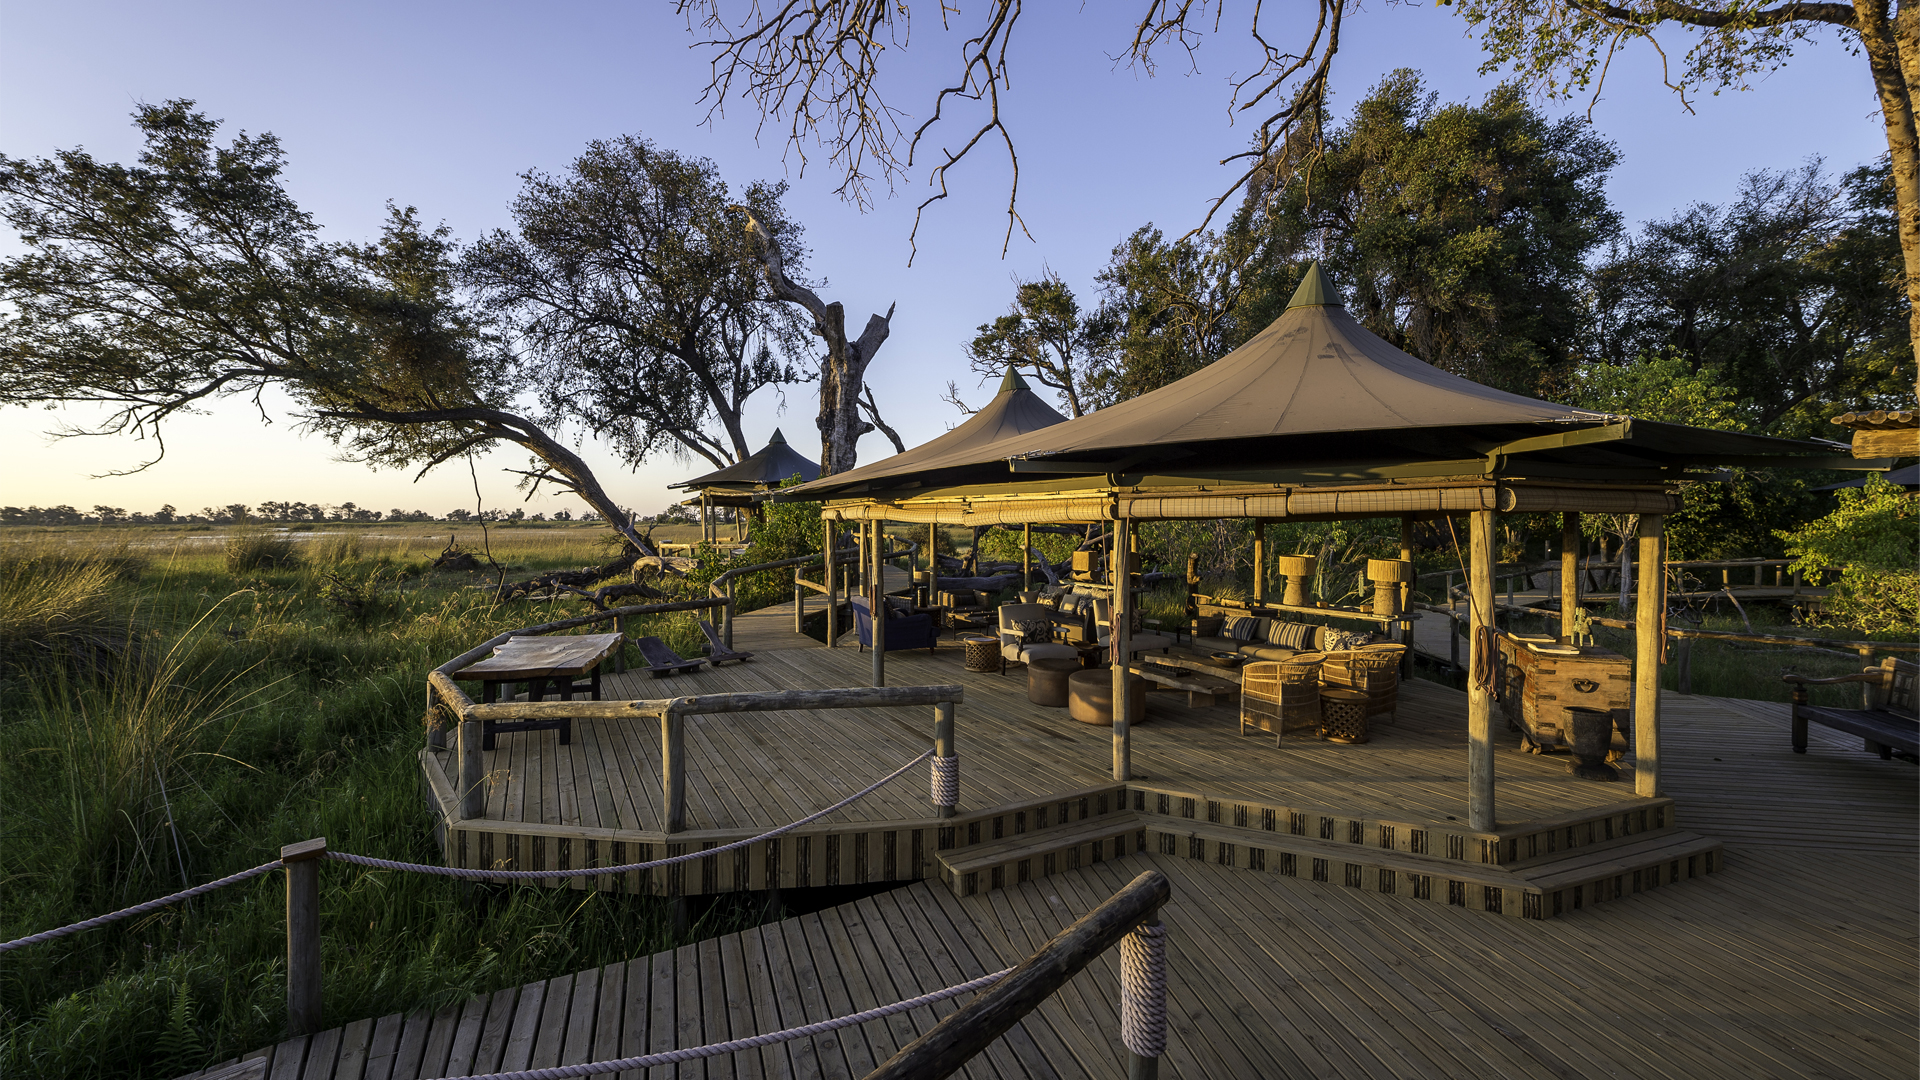 accommodation on safari tented and luxury lodges little vumbura main area